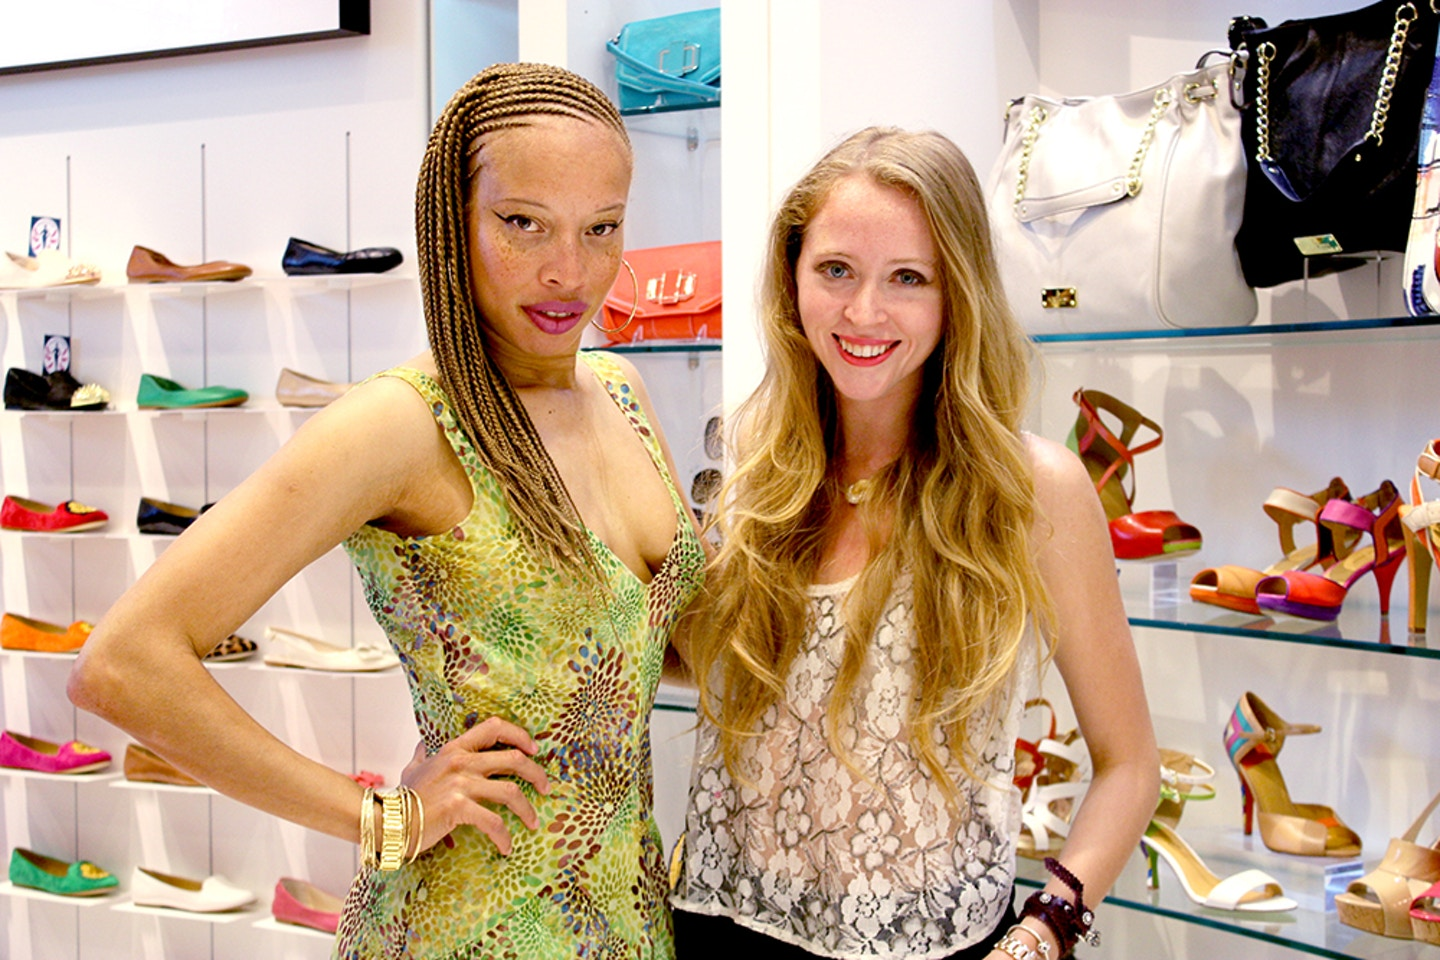 stacey mckenzie supermodel nine west store opening yorkdale mall